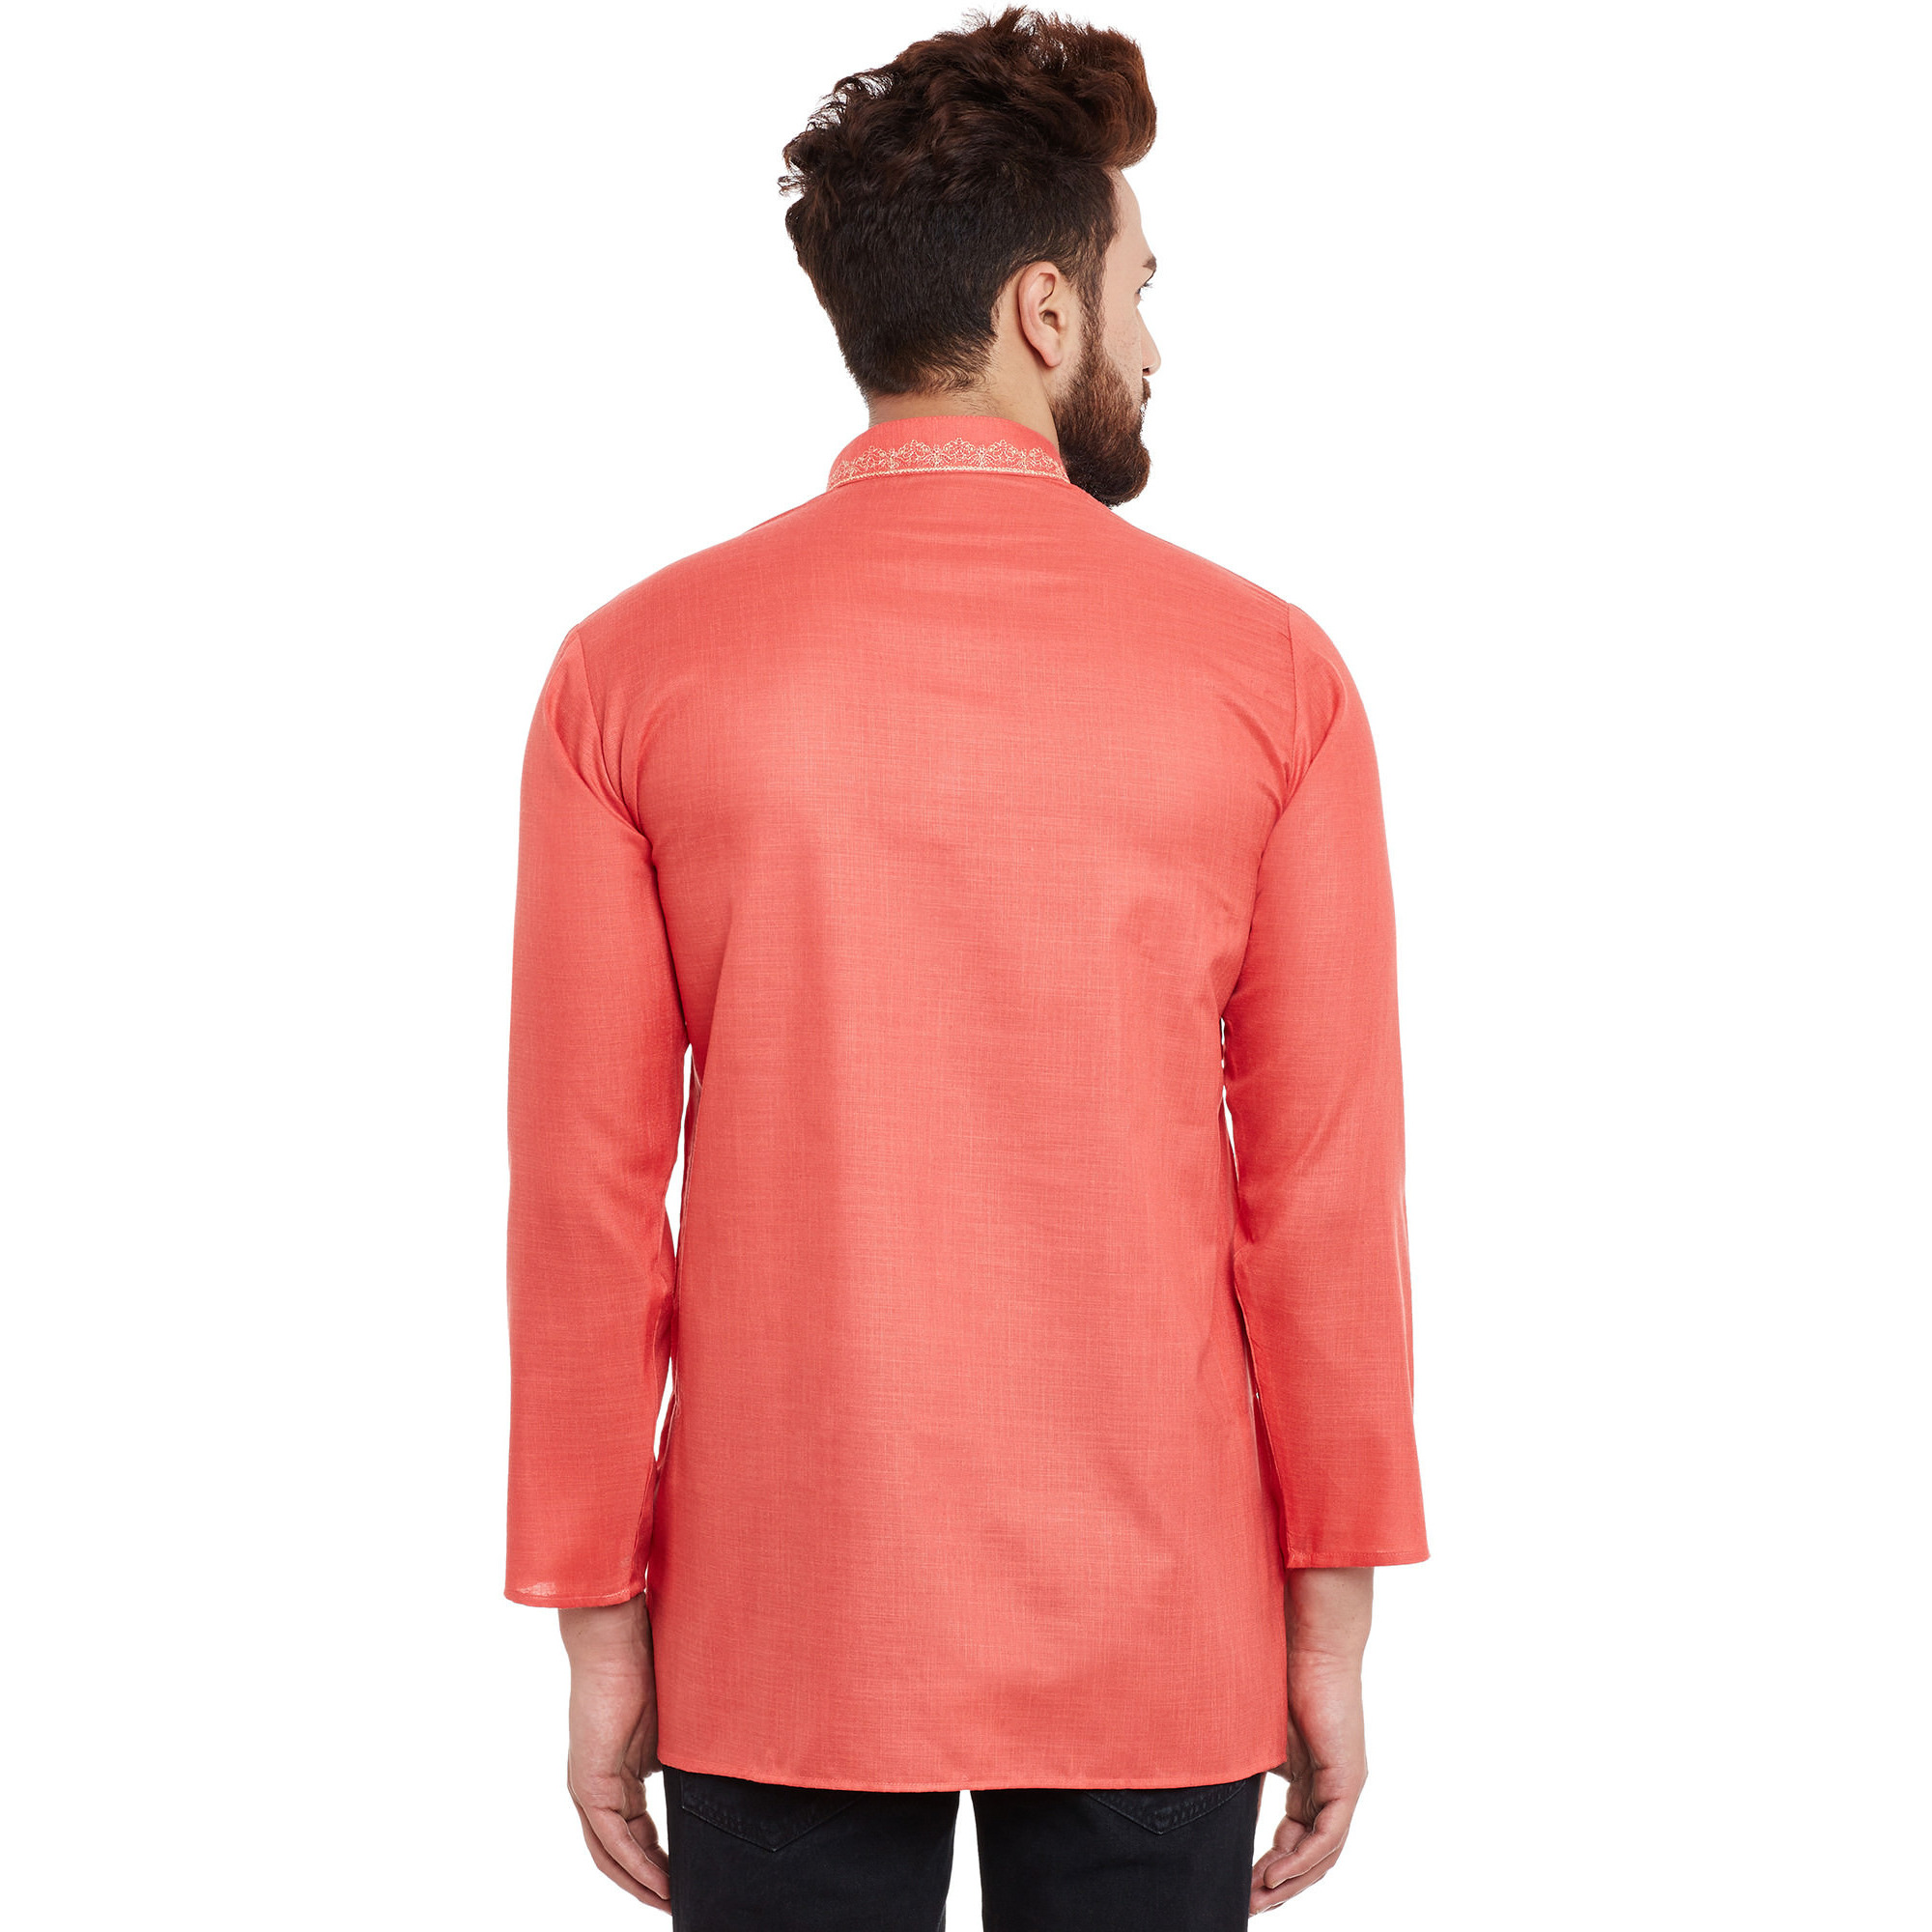 Men's Traditional Ethnic Wear Orange Cotton Short Kurta Full Sleeve Regular Fit